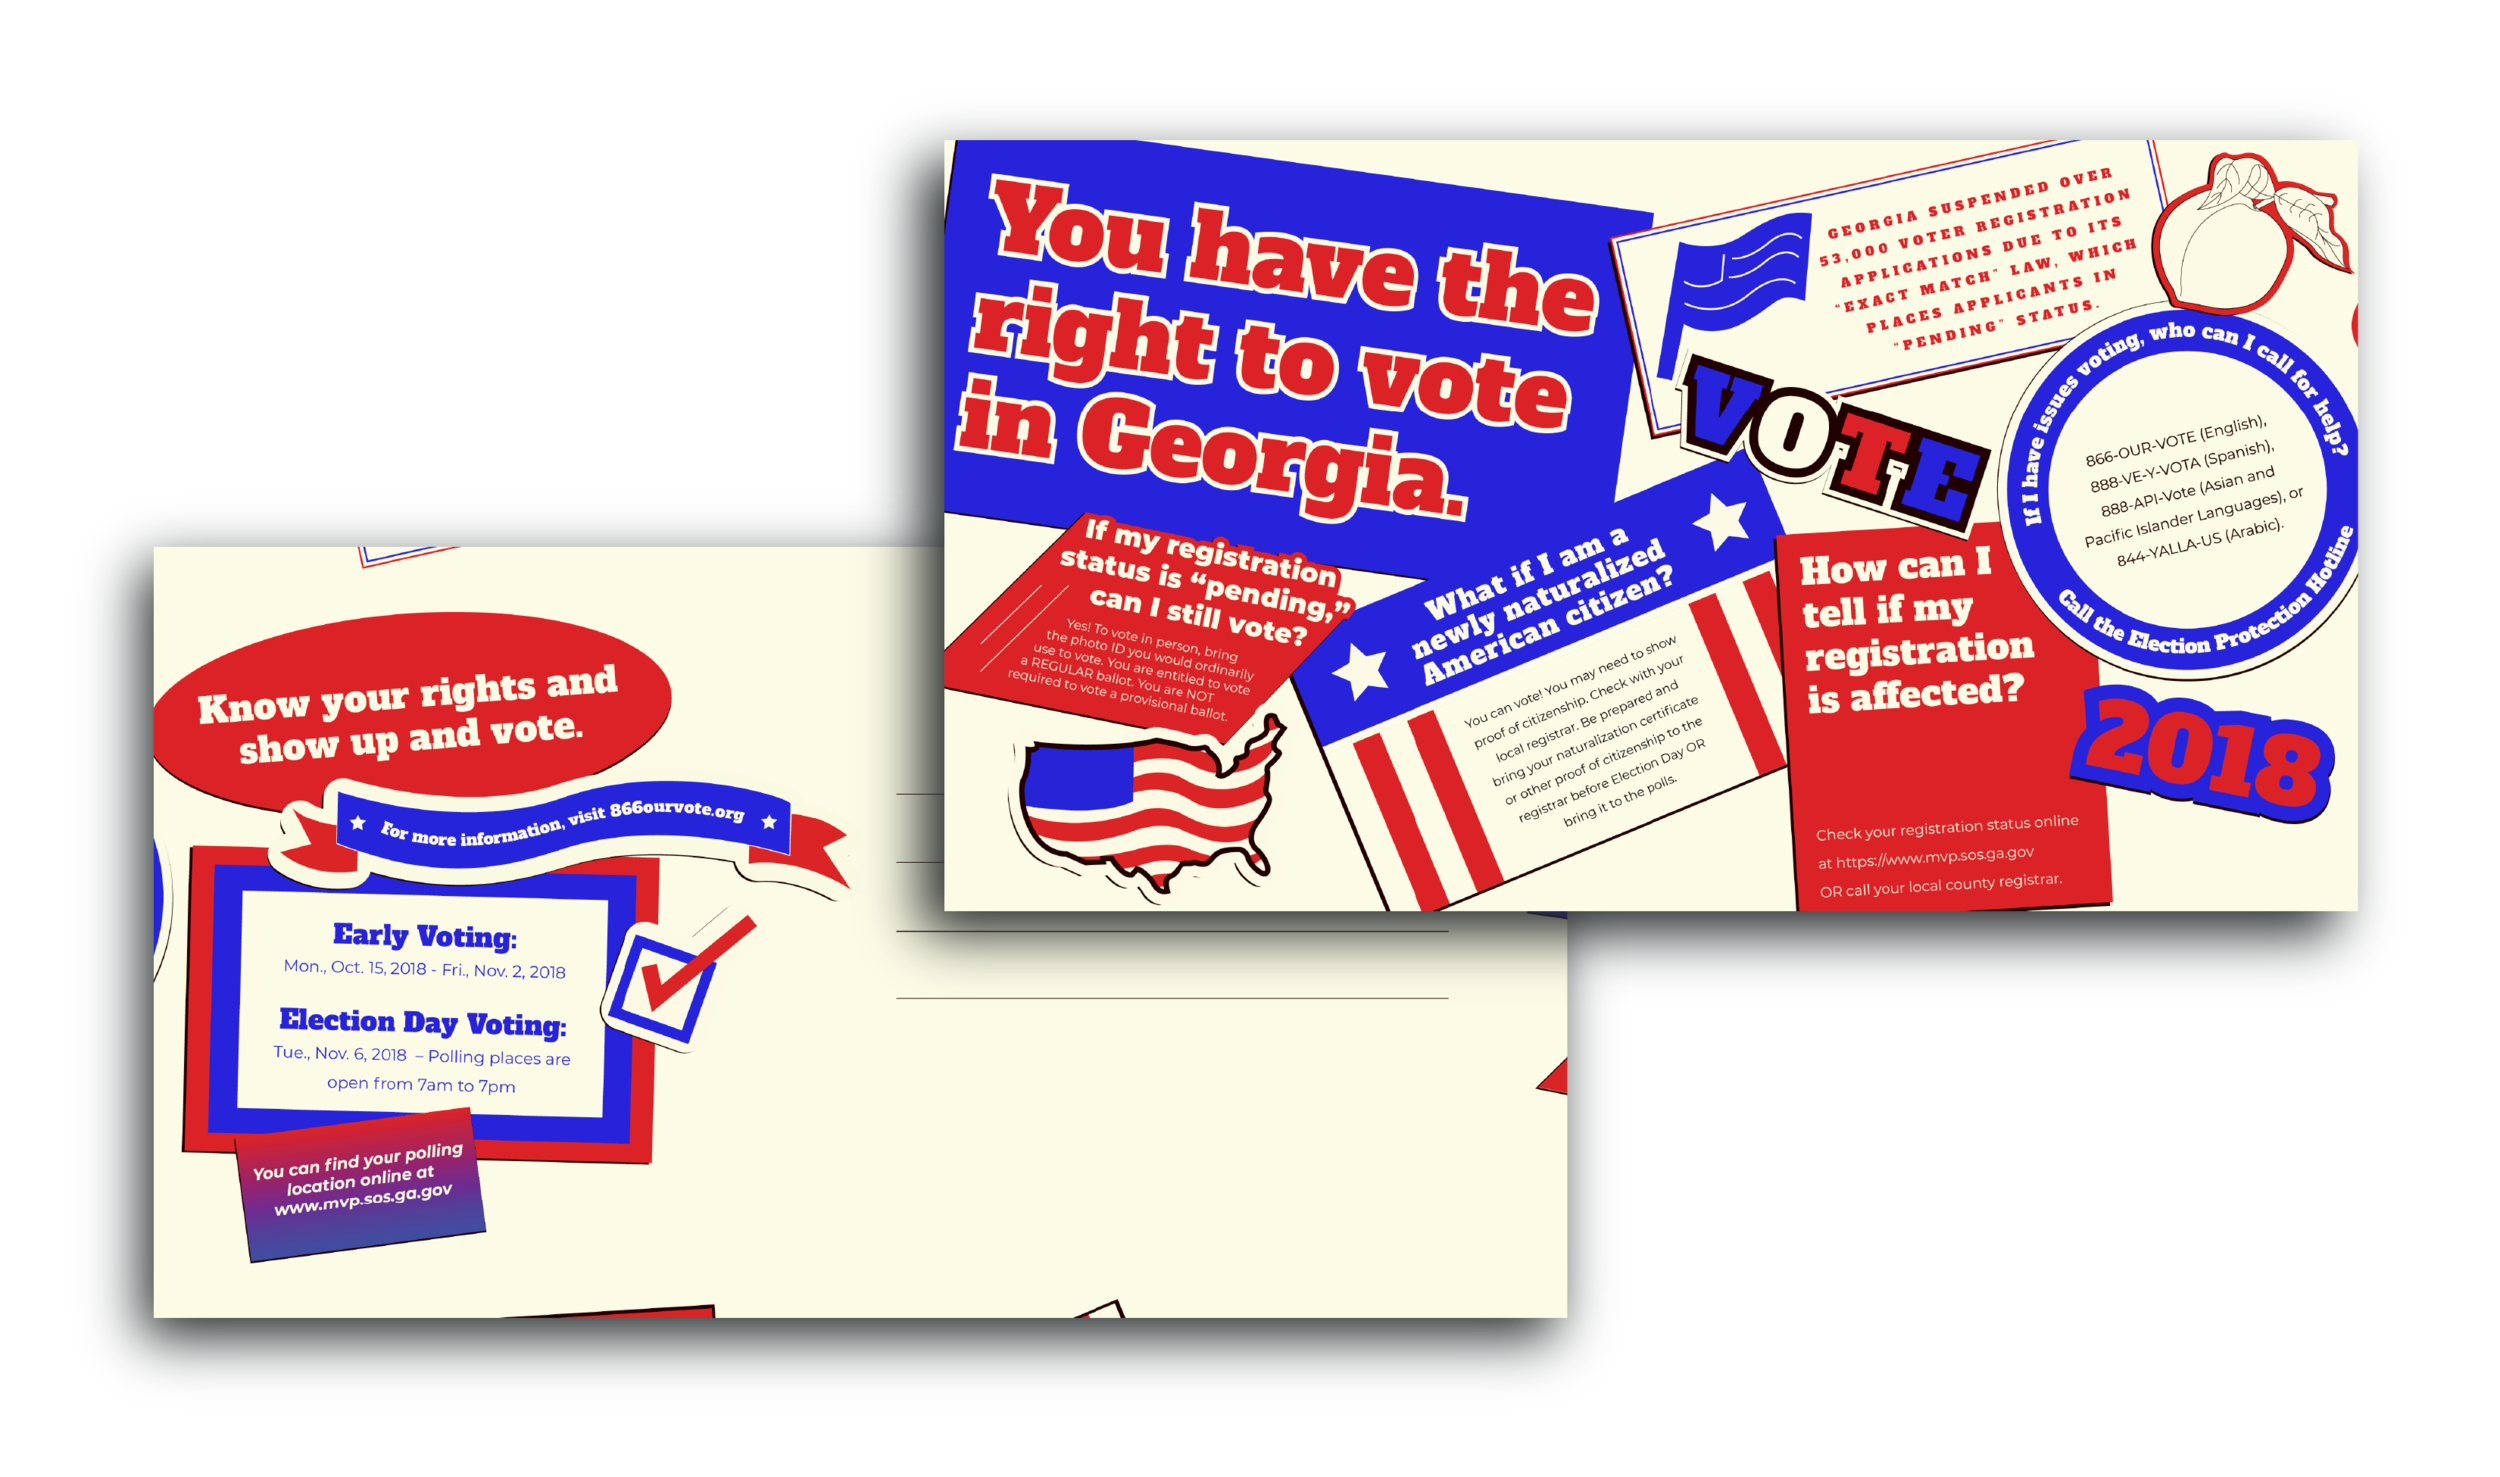 While freelancing, I got the opportunity to work with the Campaign Legal Center in order to fight against Voter Suppression. No matter which side of the political sphere you fall on, you should be confident in your ability to vote for the candidate you see fit. I created post cards that can be mailed out in the state of Georgia in order to inform voters on their rights.